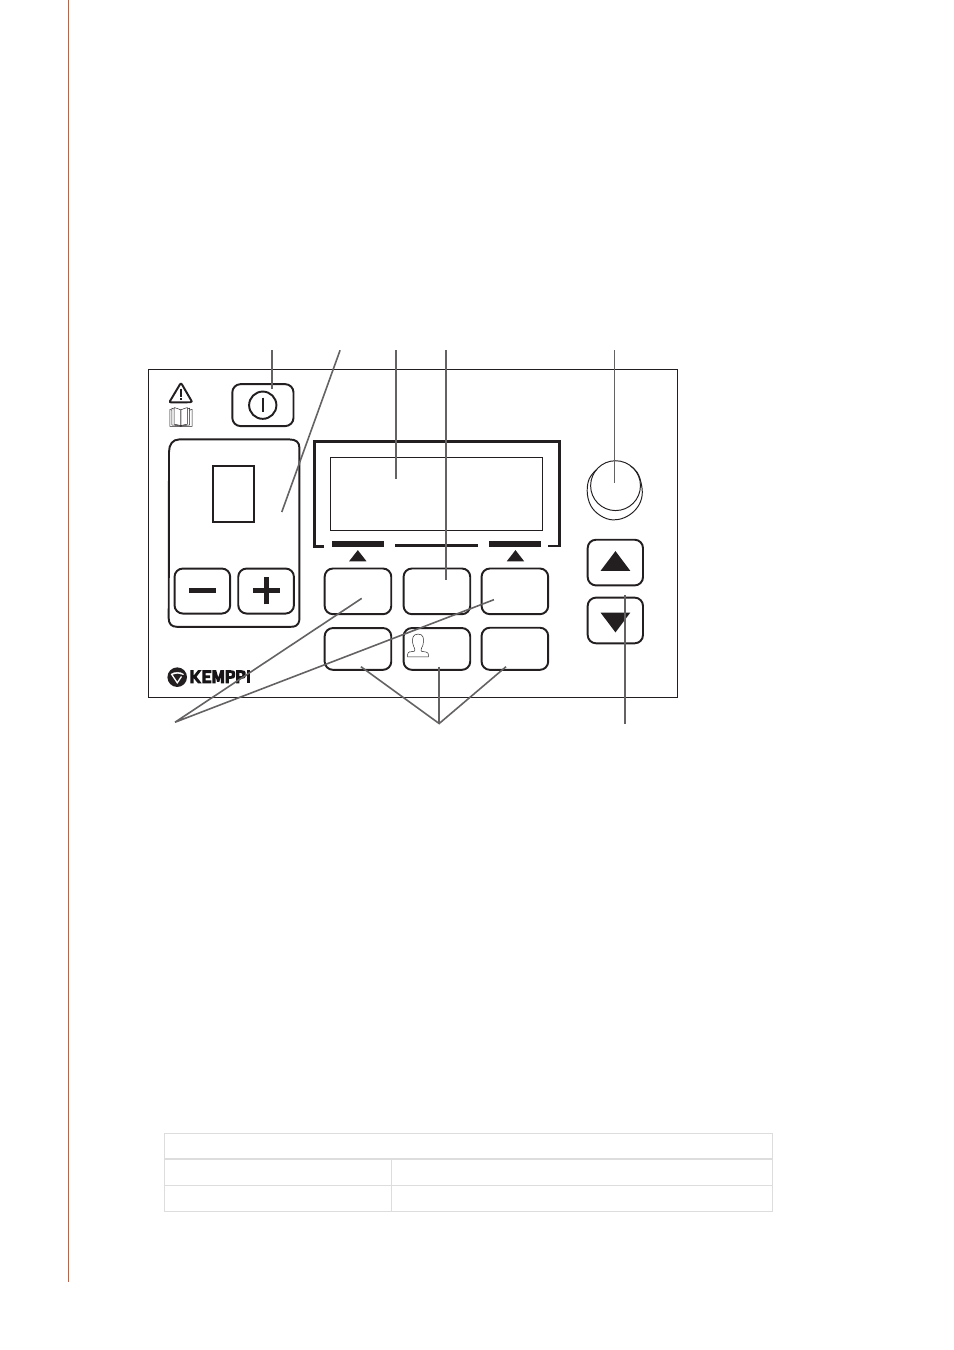 Menu, Control panel p 65, 1 layout and button functions